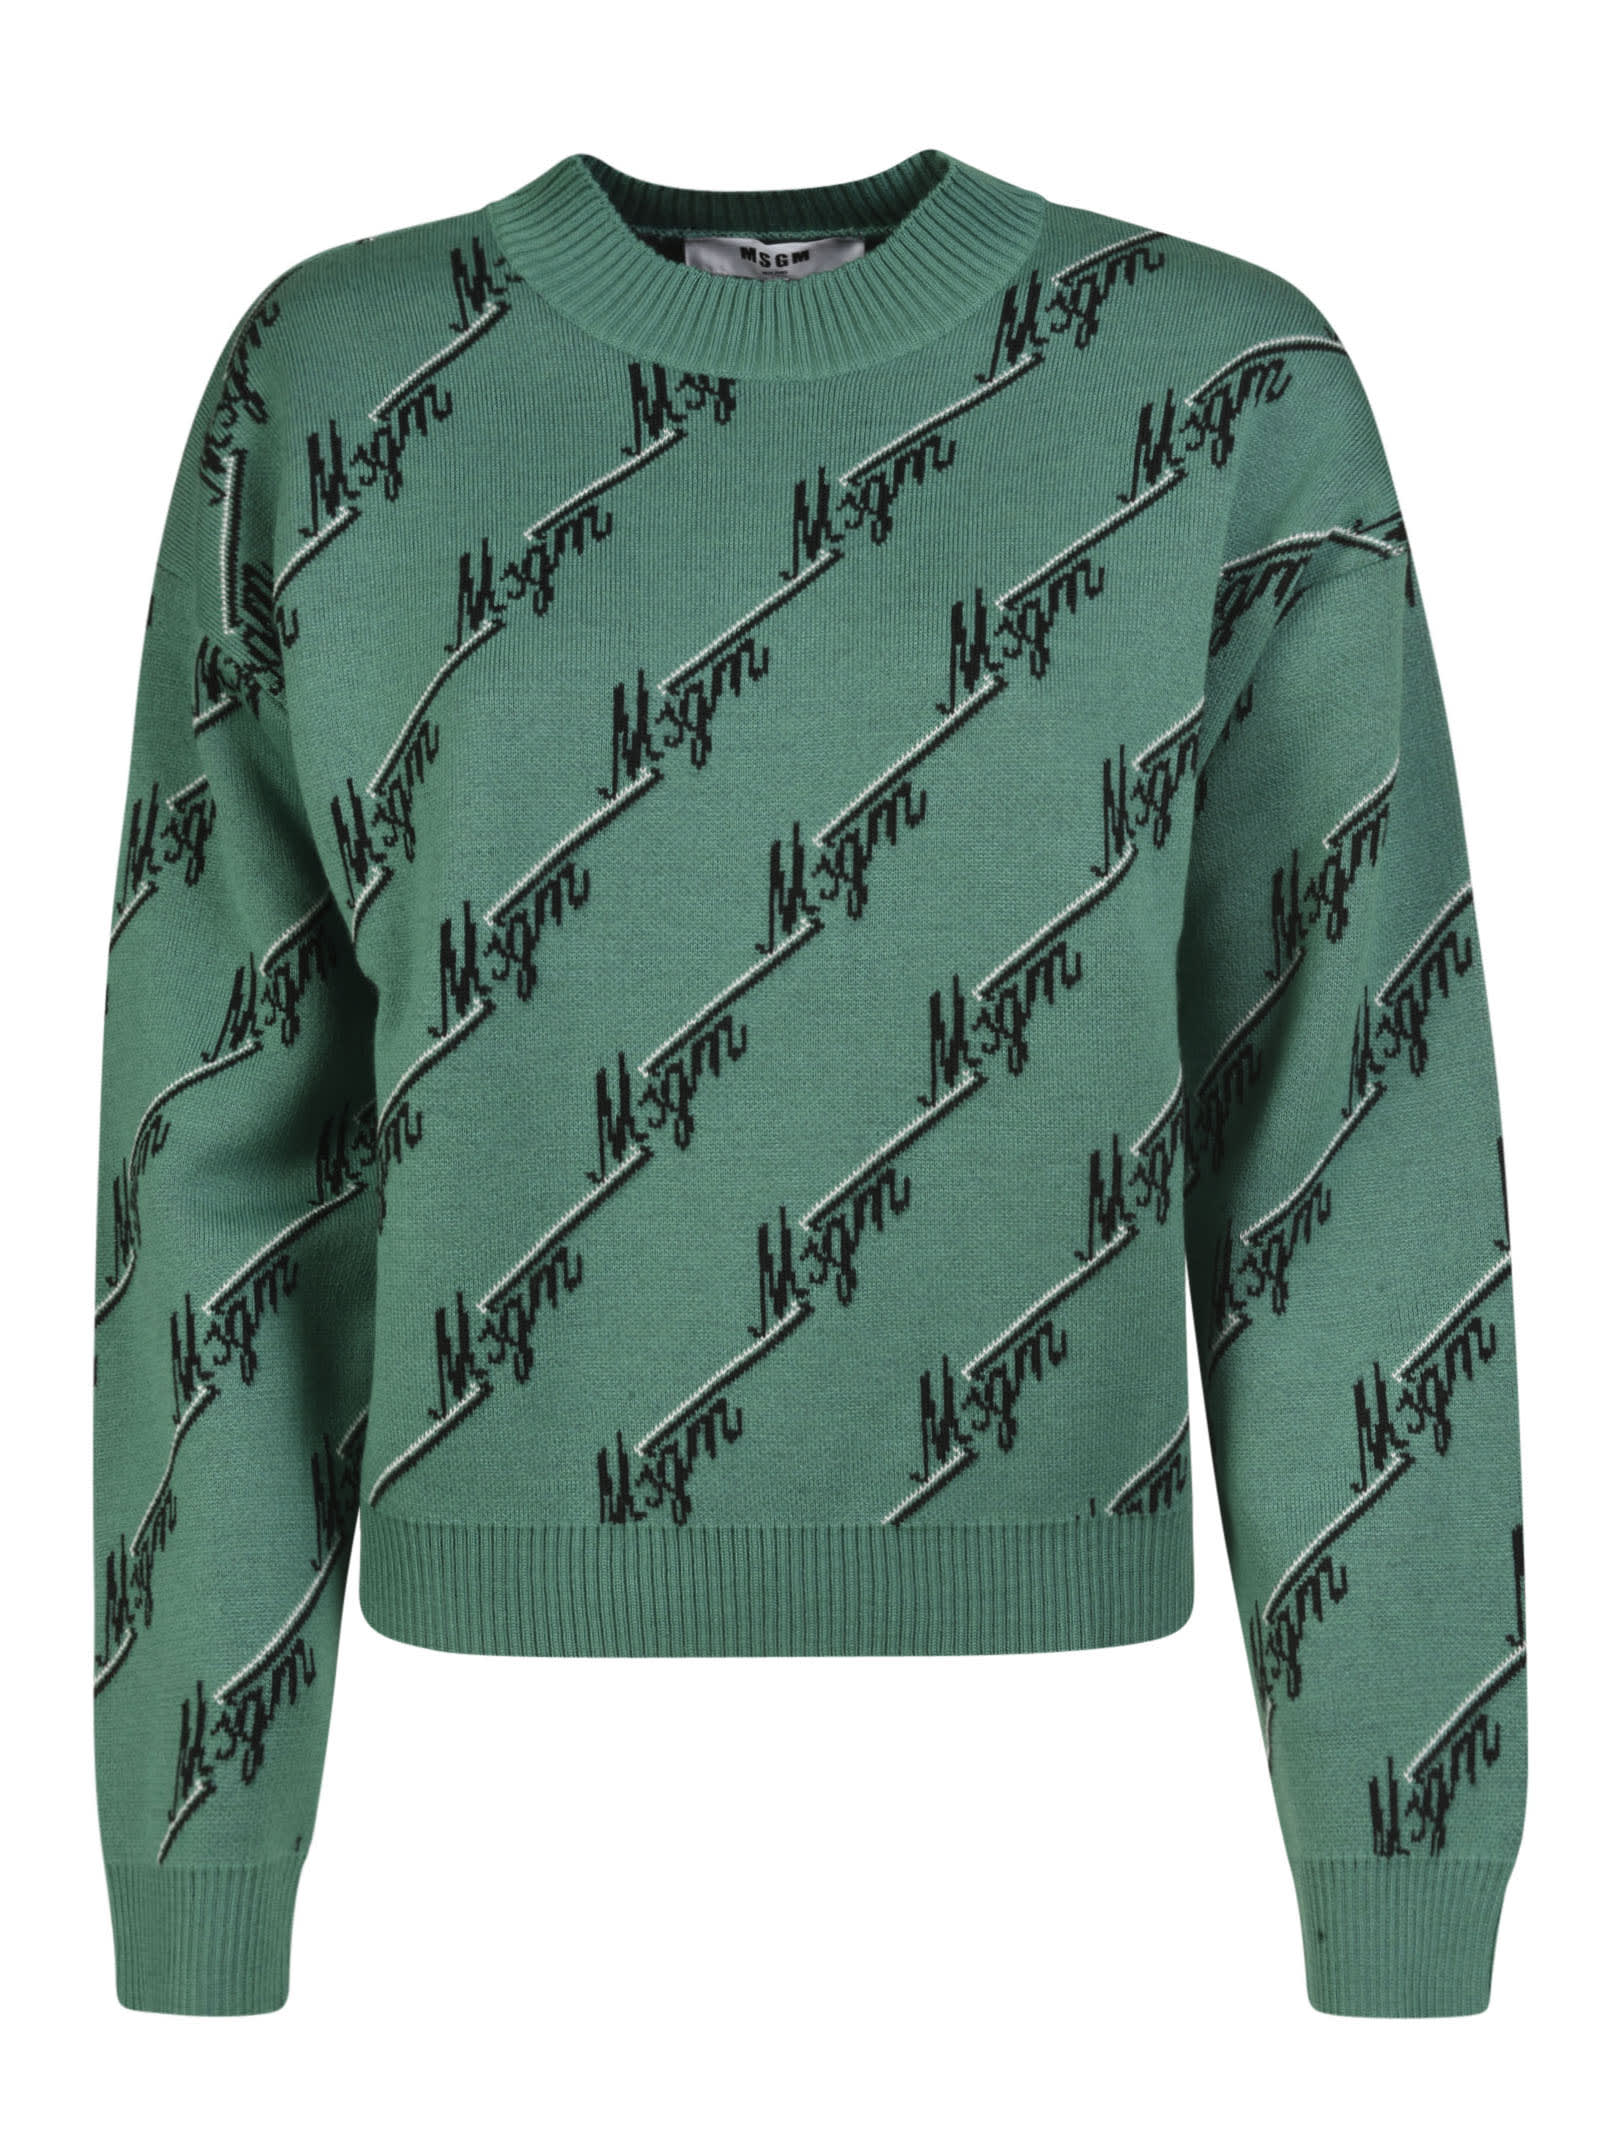 Msgm LOGO MOTIF KNIT SWEATER